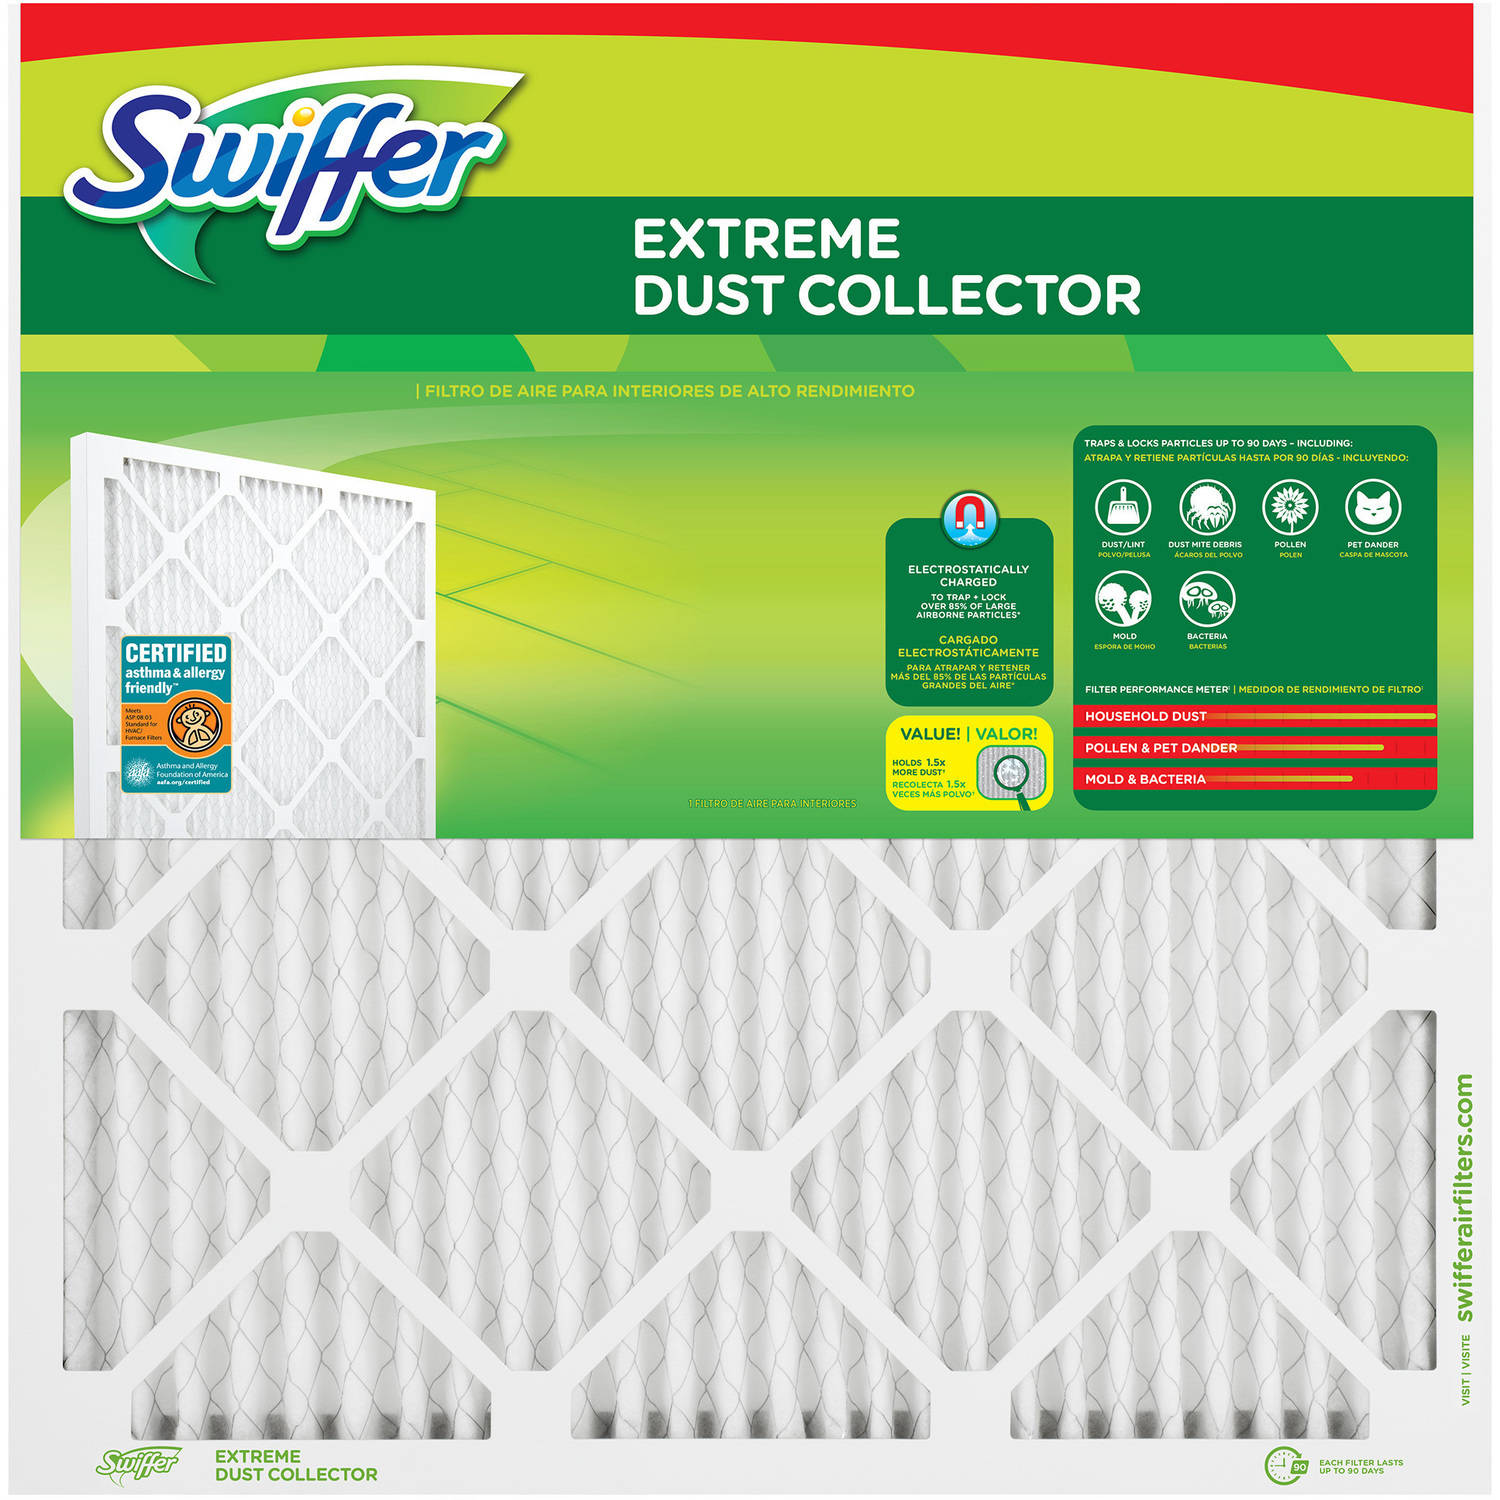 Flanders Corporation Swiffer Extreme Dust Air Filter, MERV 11, 12 x 24 x 1, 1 - Pack